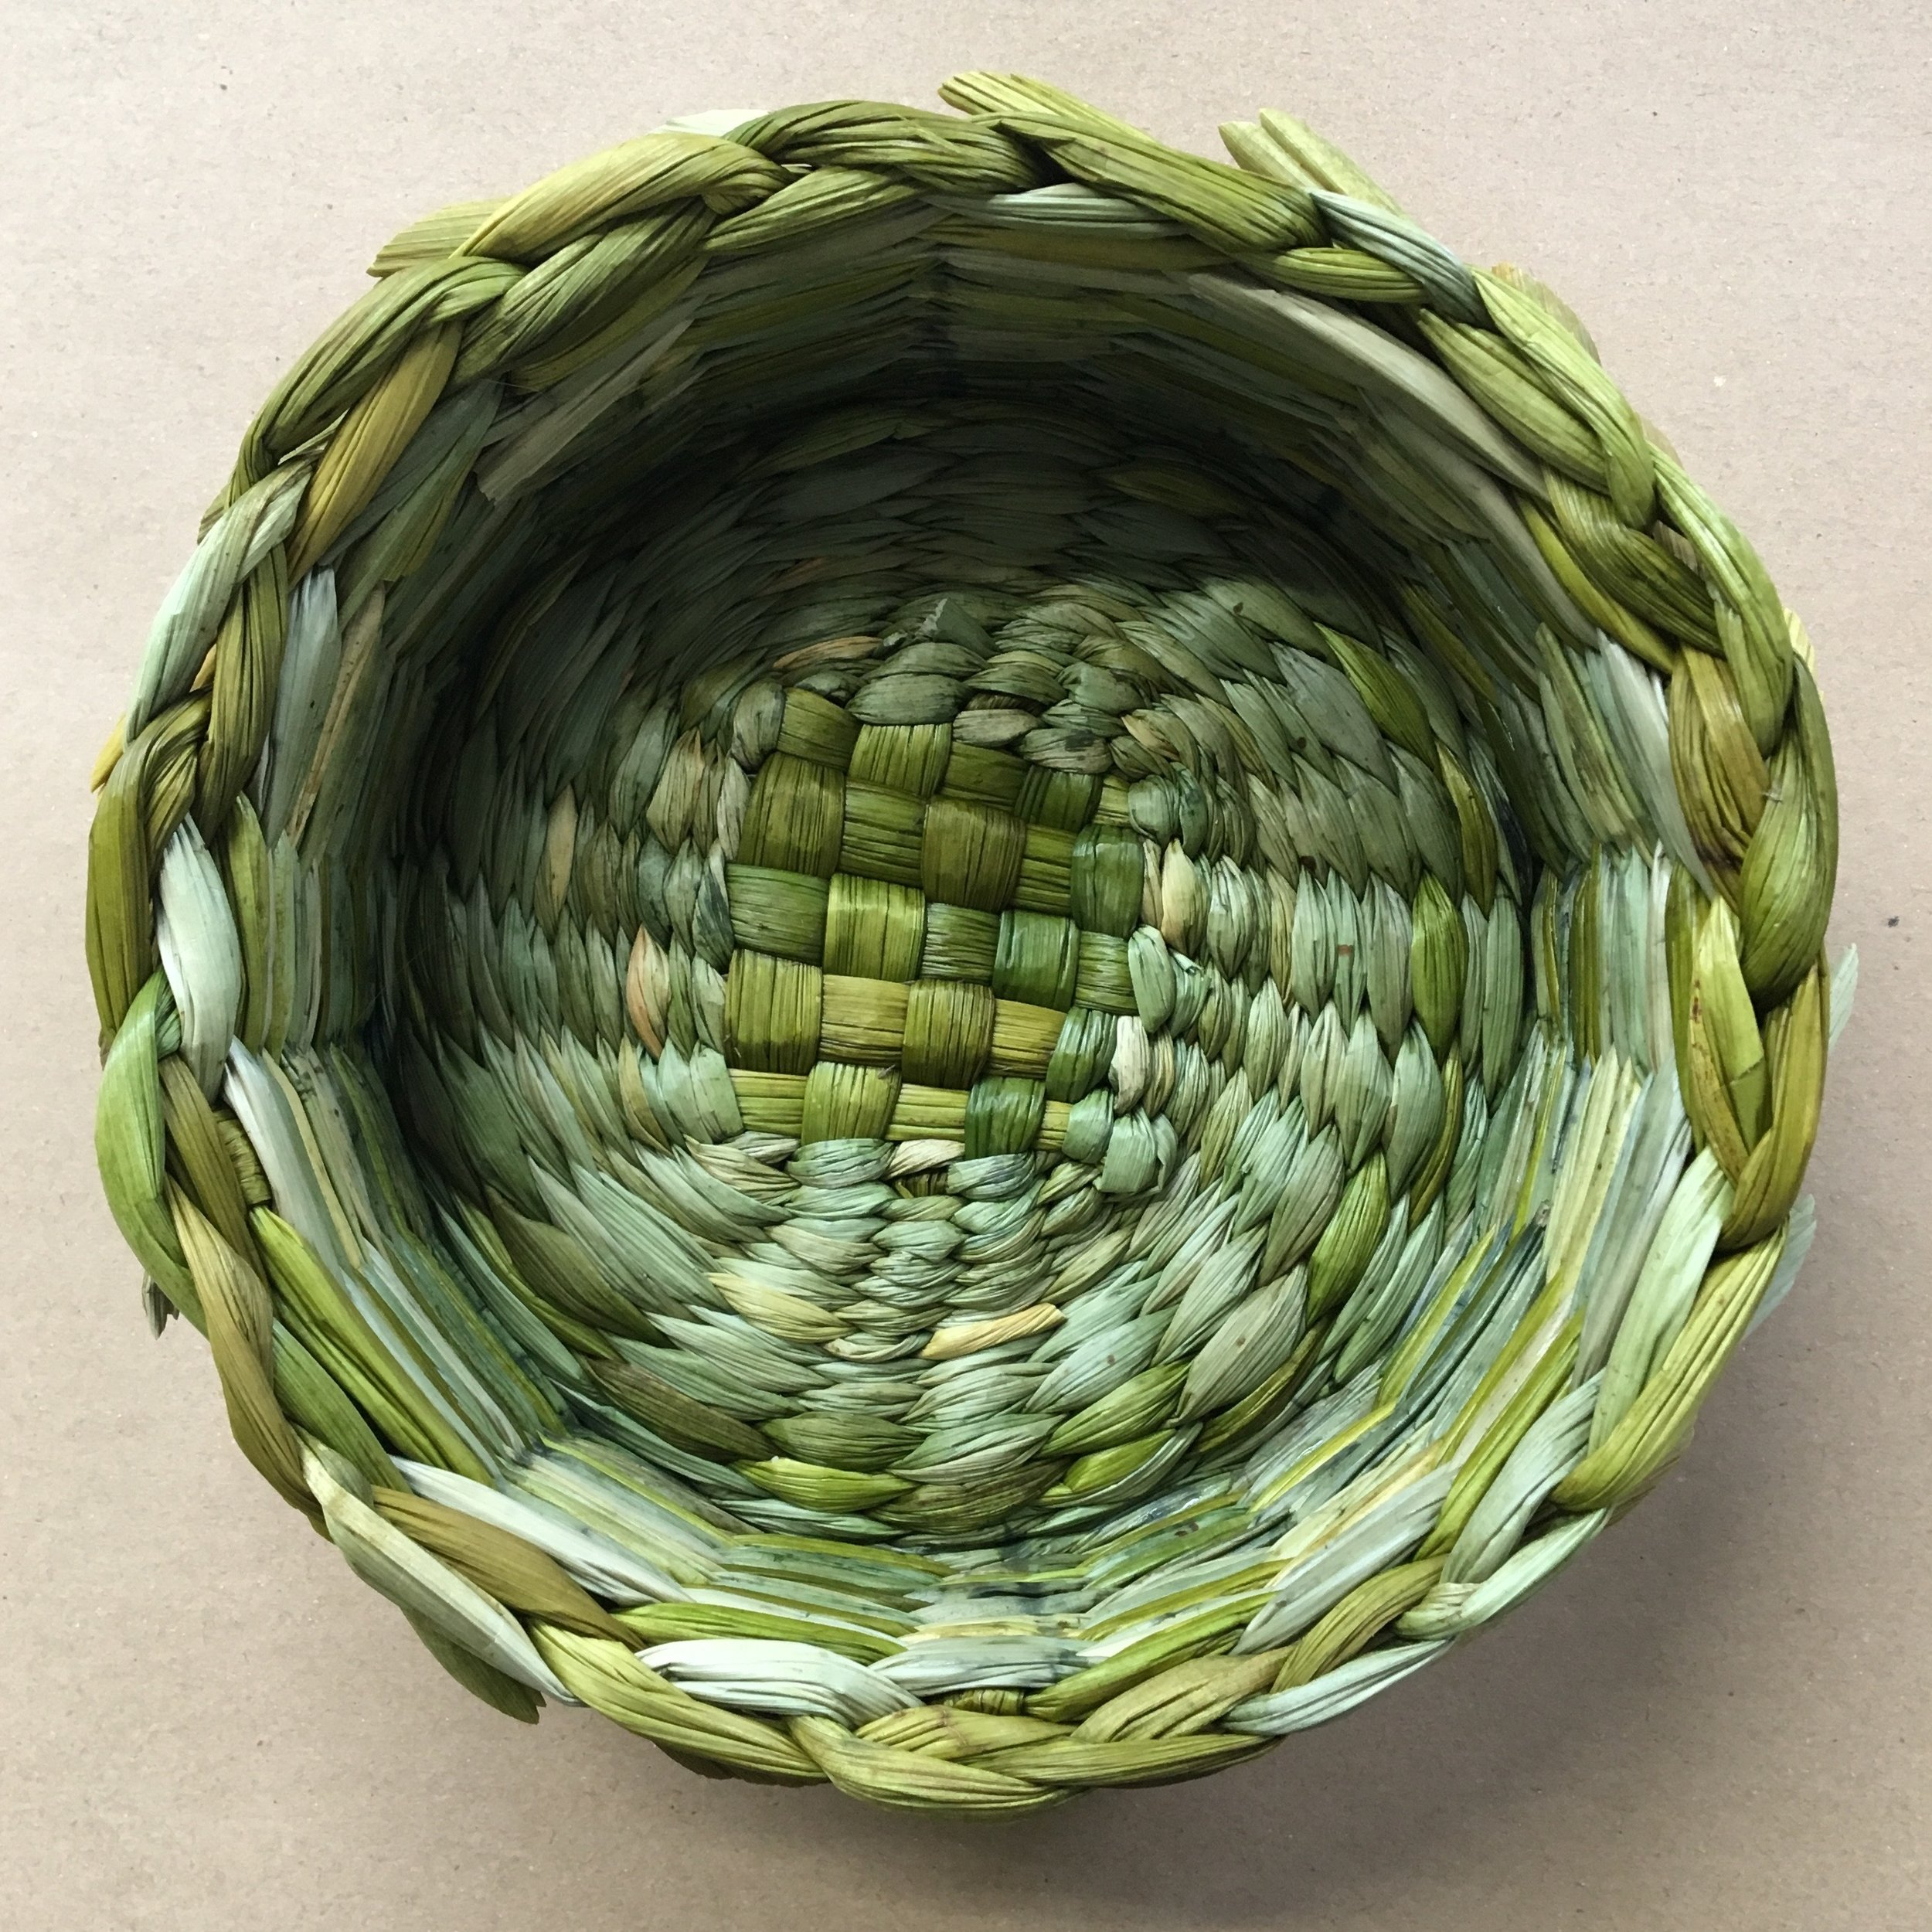 Basketmaking-6.jpg